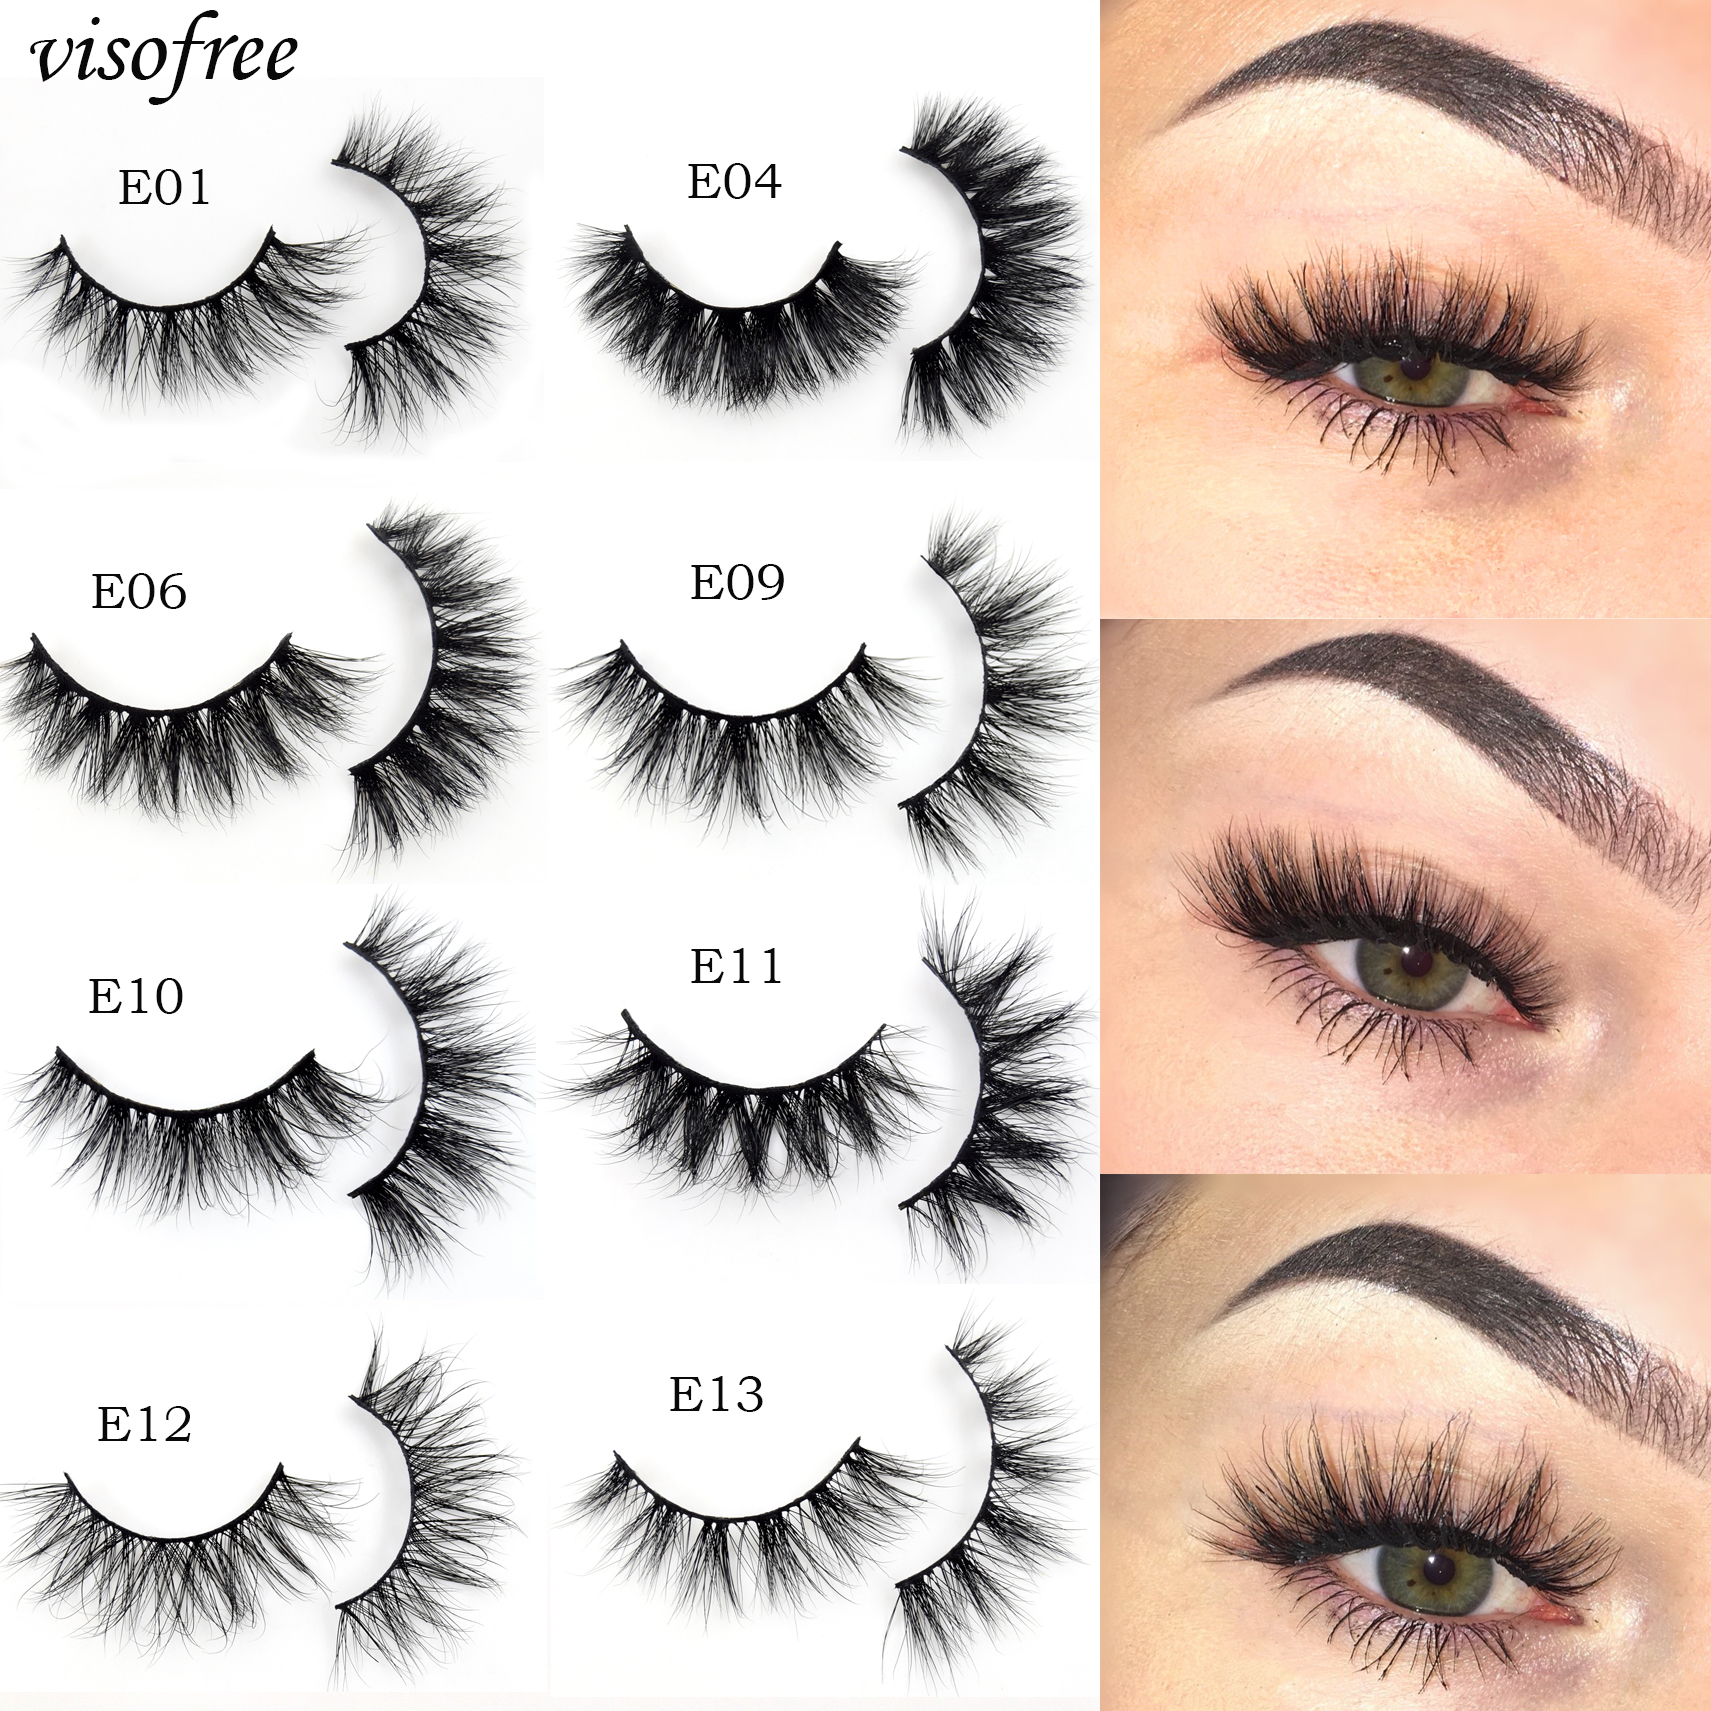 Visofree 3D Mink Lashes Crisscross  False Eyelashes Cruelty Free Mink Eyelashes Makeup Eyelash Extension Reusable Lashes